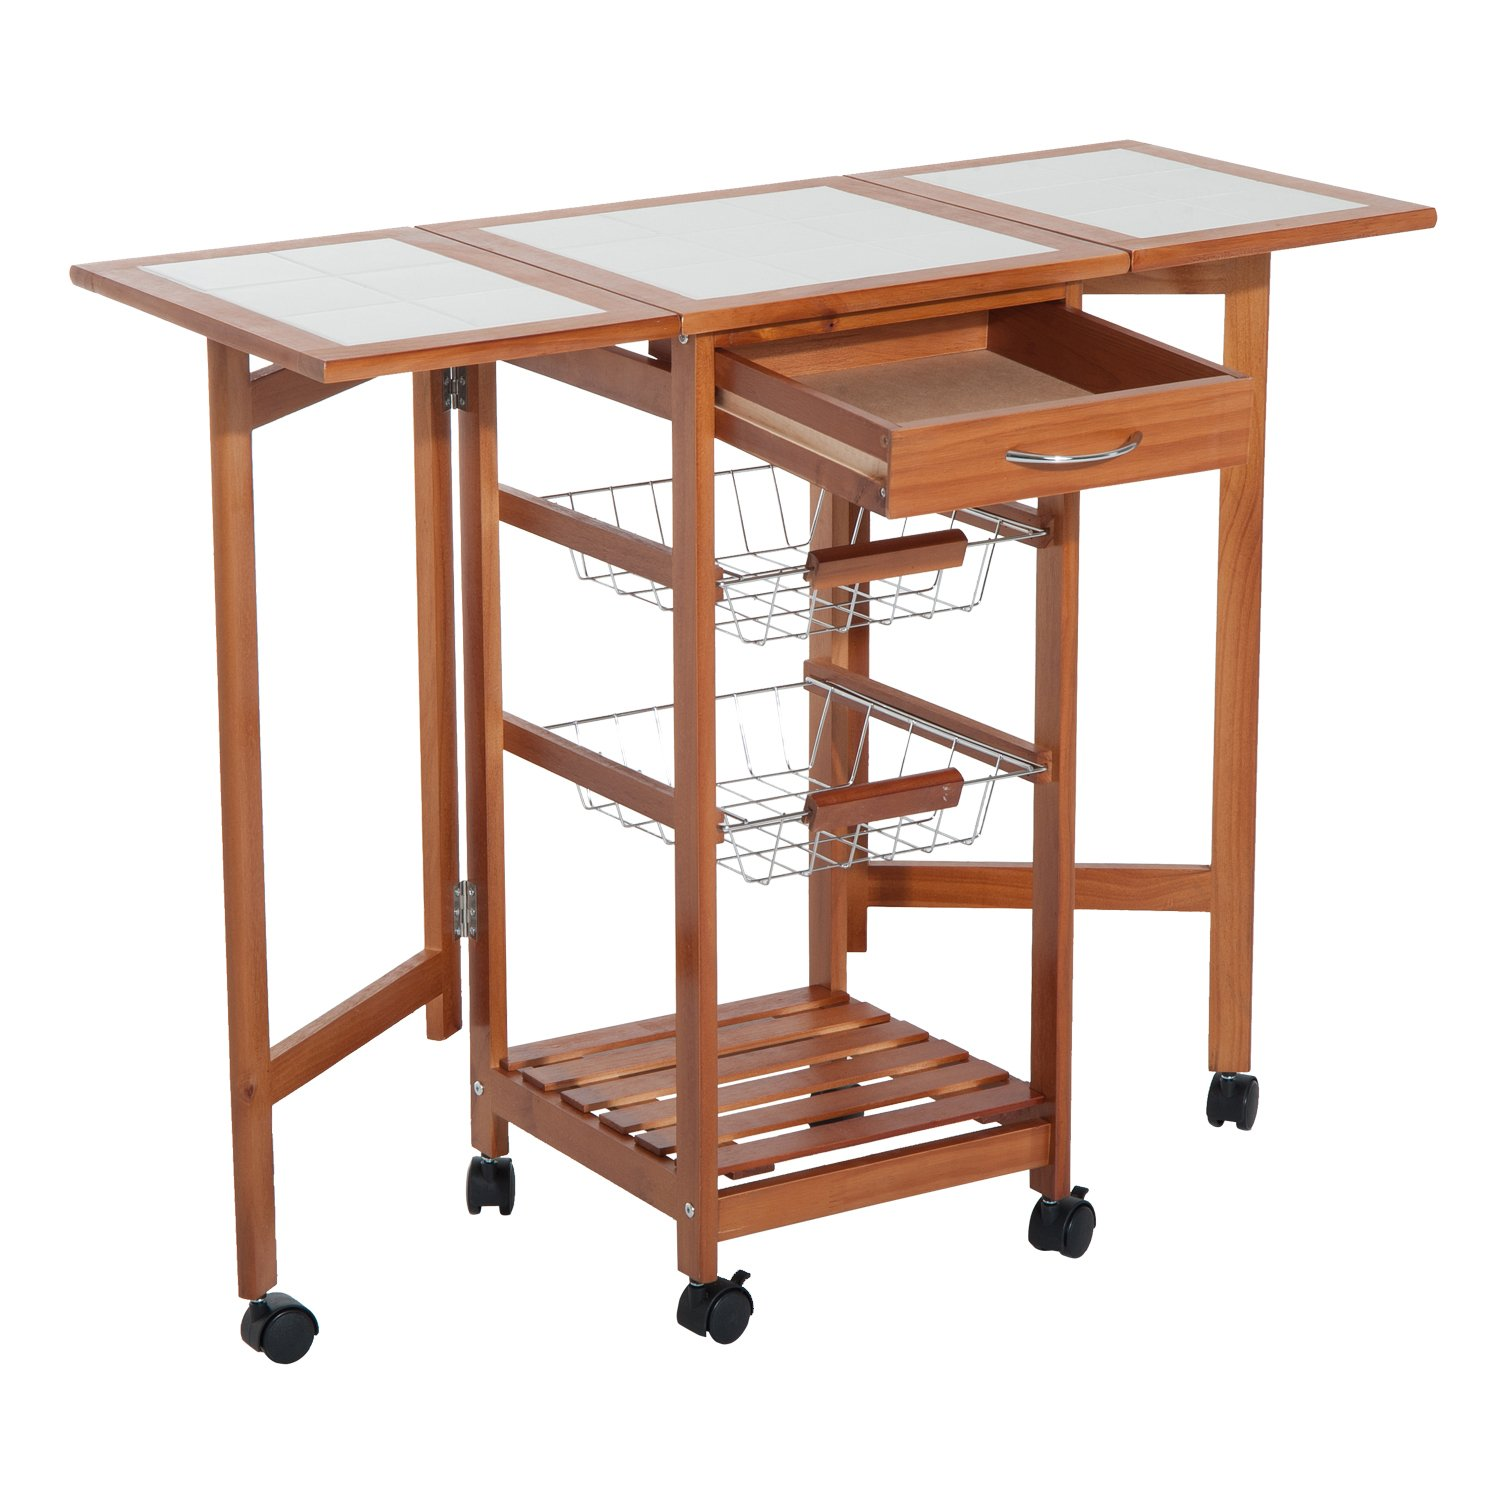 HOMCOM Wood 4 Tier Rolling Kitchen Trolley Cart with Storage Drawer Rack Basket Aosom Canada